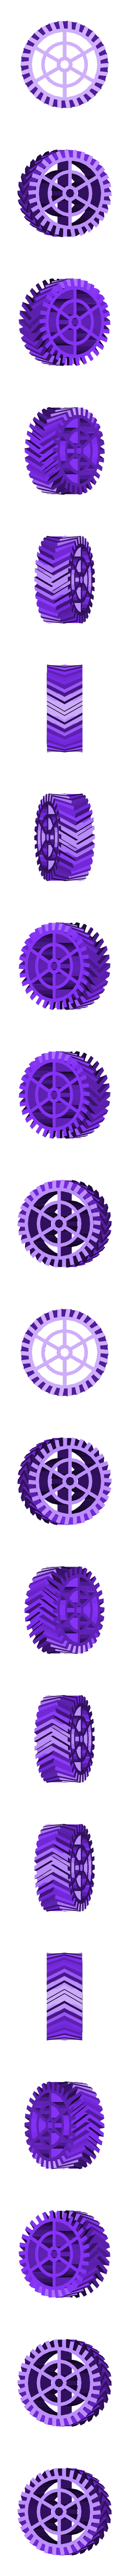 helical_double_star.stl Download free STL file OpenSCAD Helical Gears • 3D printing object, AlbertKhan3D